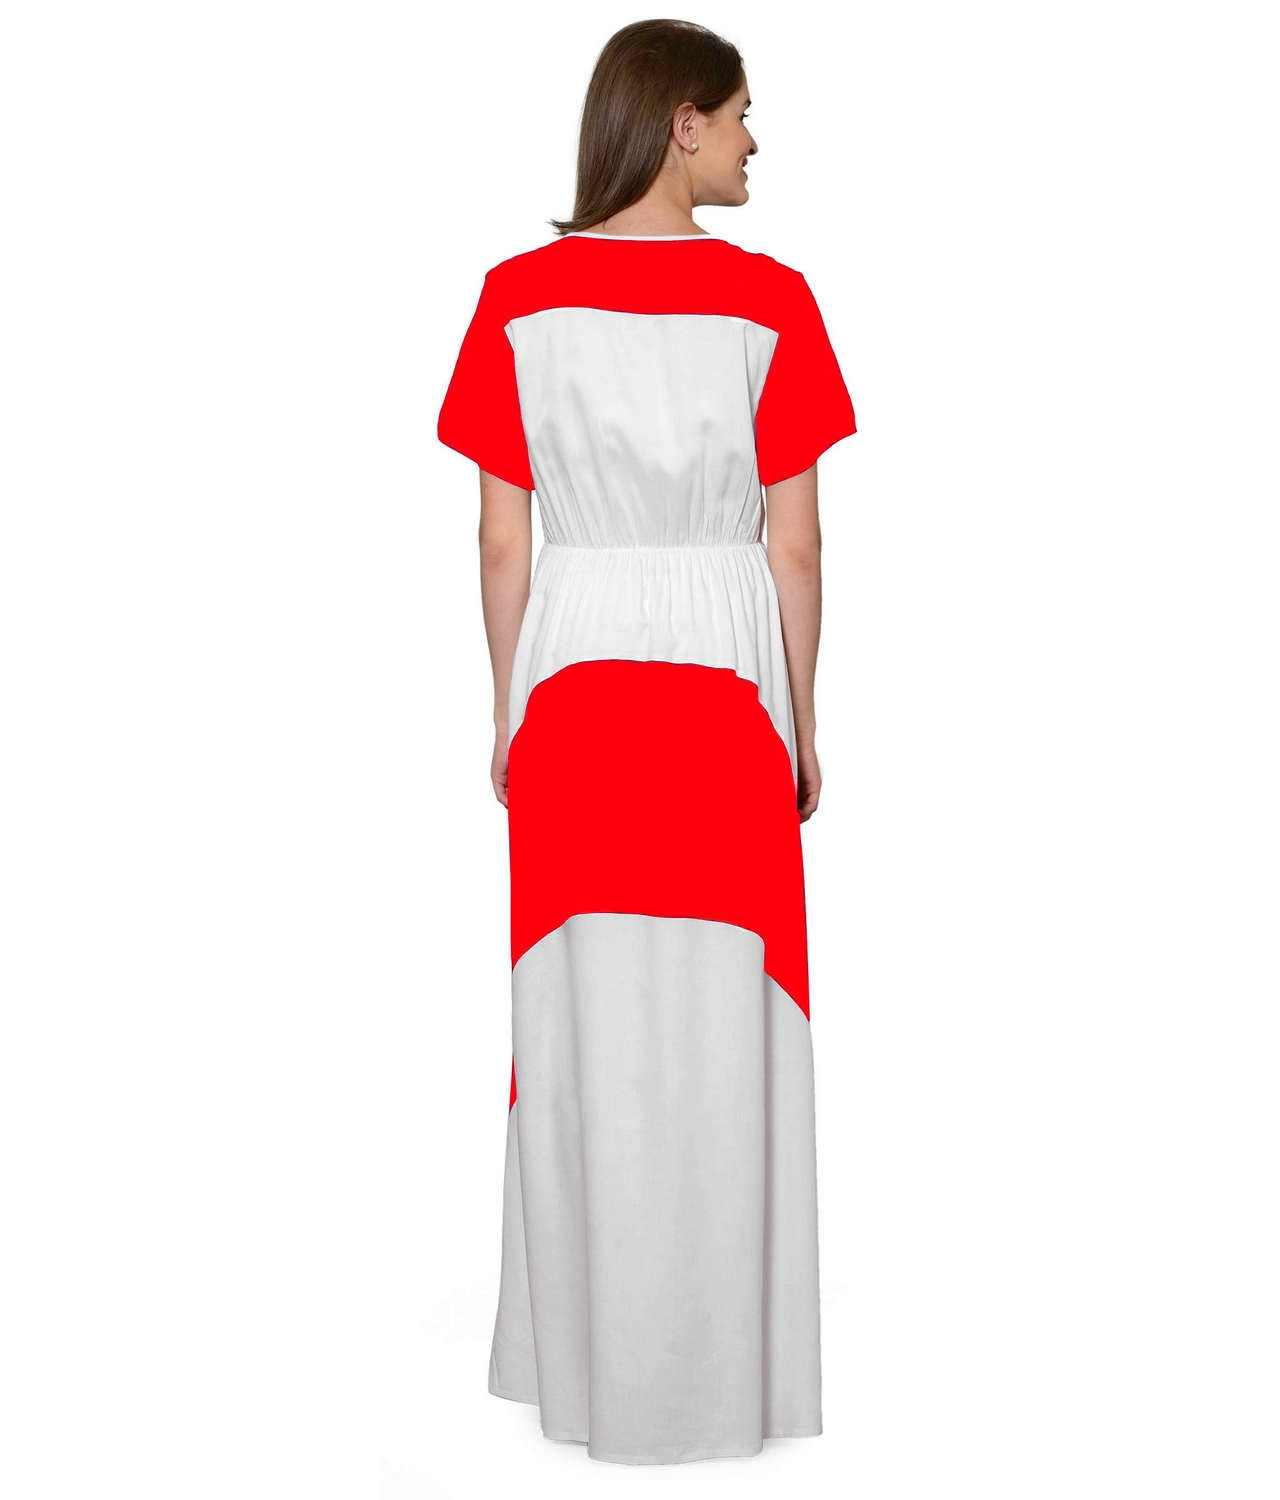 Color Block Slim Fit Maxi Dress Gown in Red:White